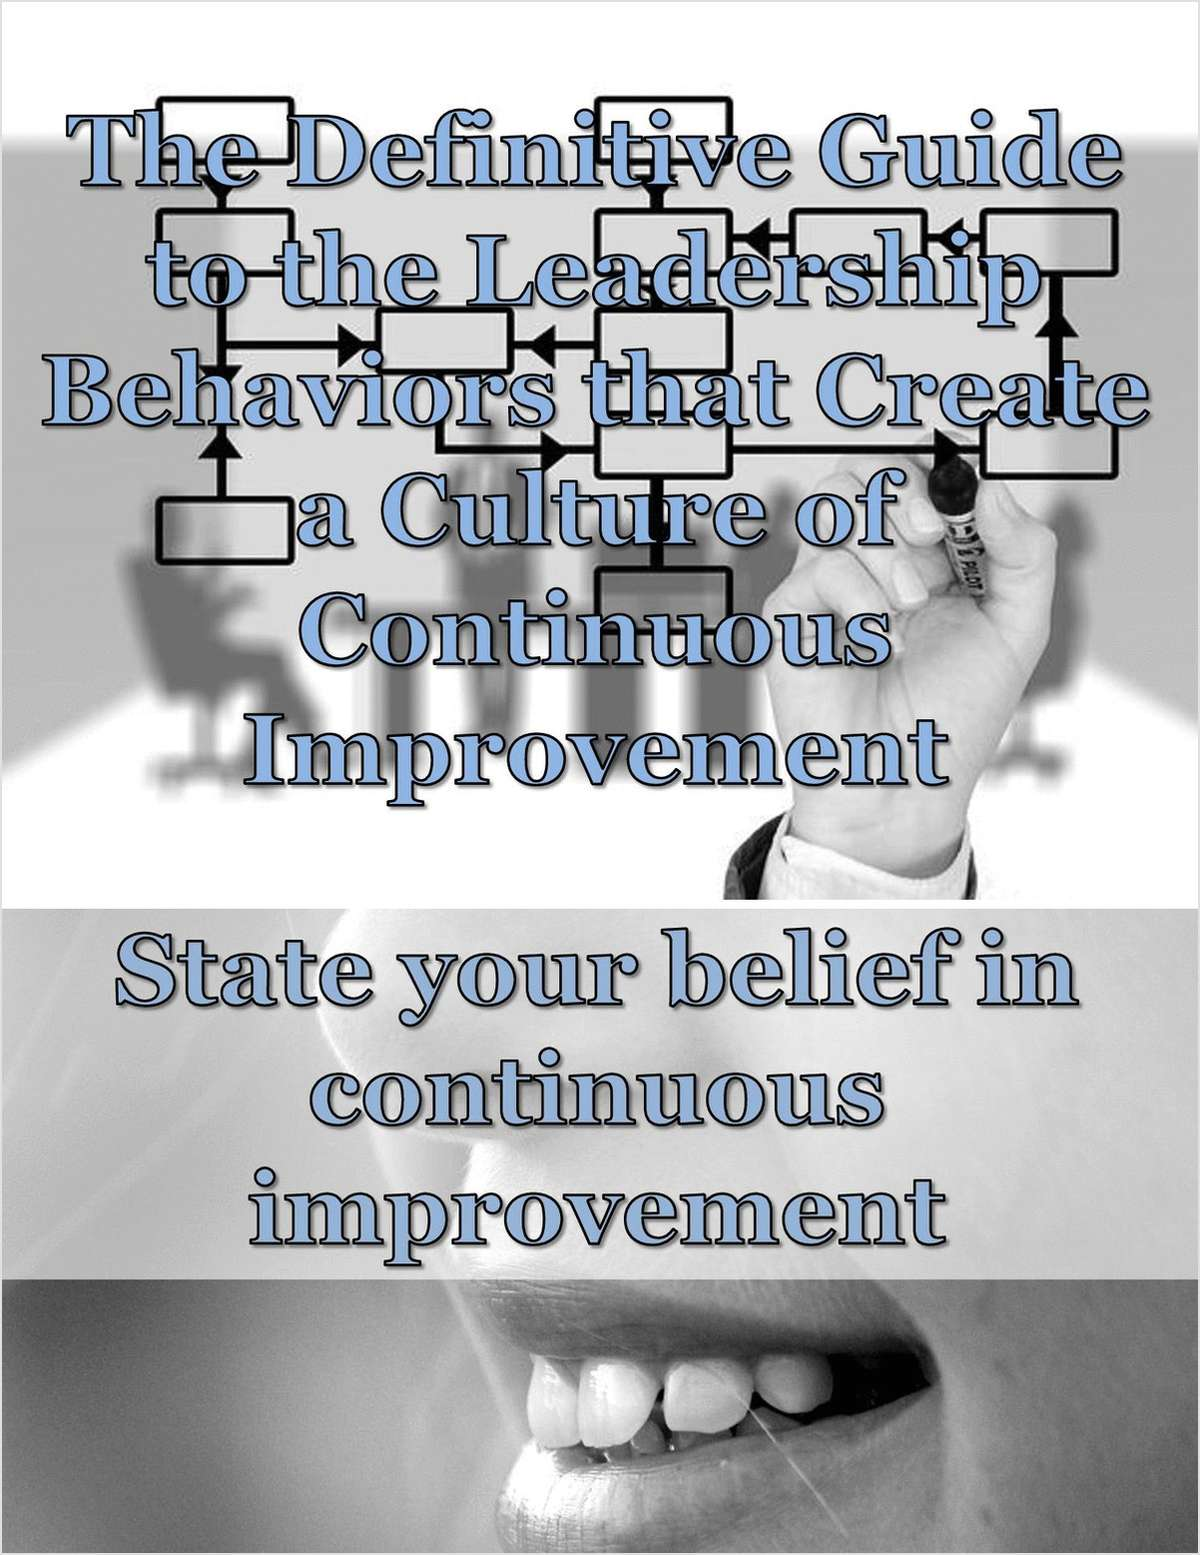 The Definitive Guide to the Leadership Behaviors that Create a Culture of Continuous Improvement